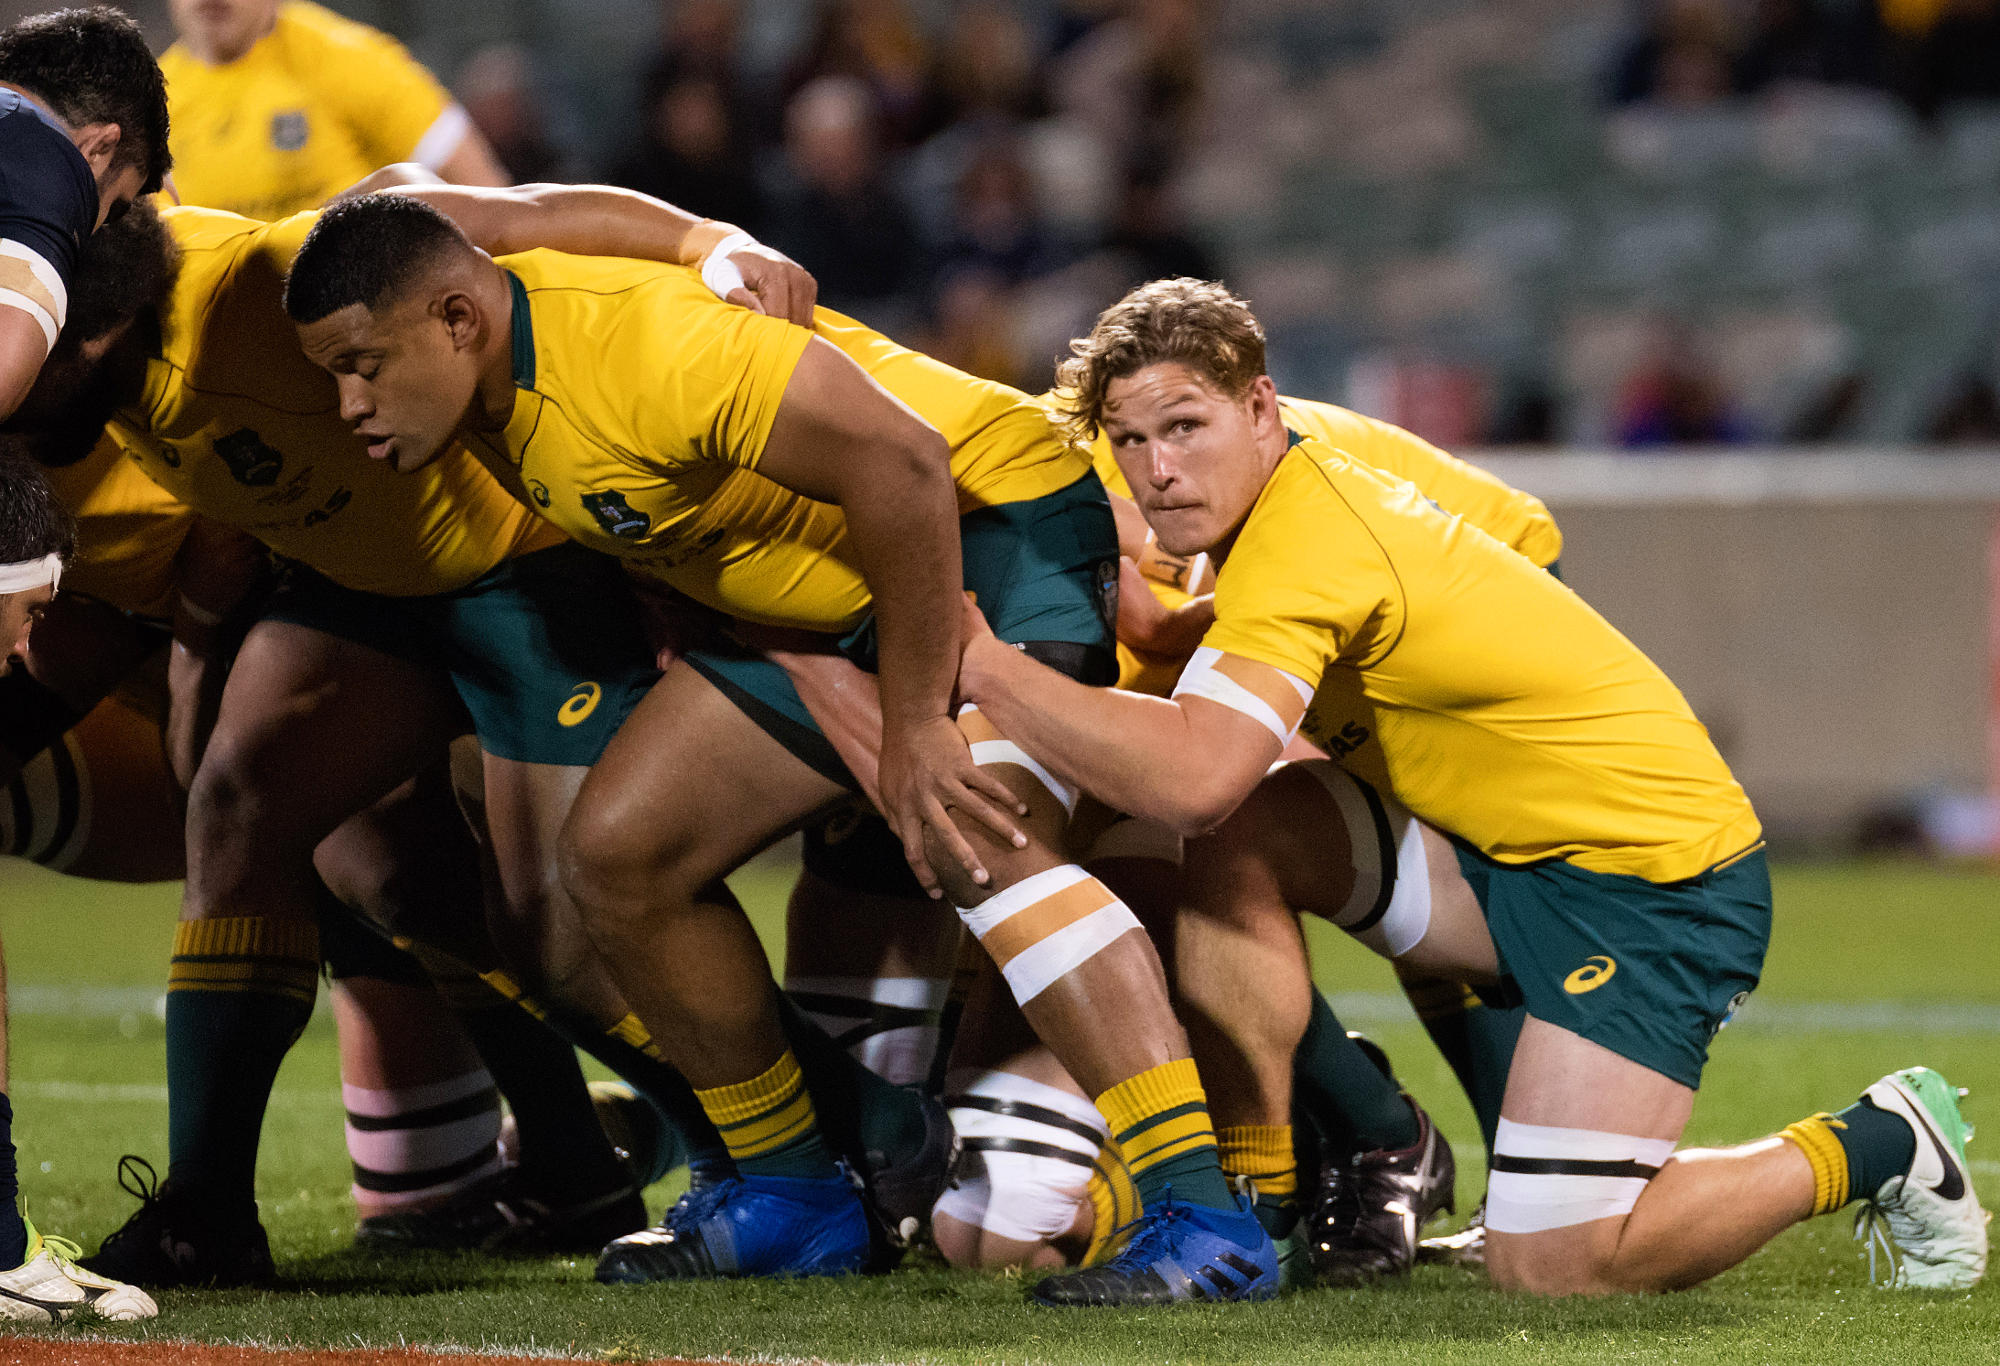 Wallabies flanker Michael Hooper gets ready to join the scrum at the 2017 Rugby Championship game between the Australia Wallabies and the Argentina Pumas on September 16, 2017.